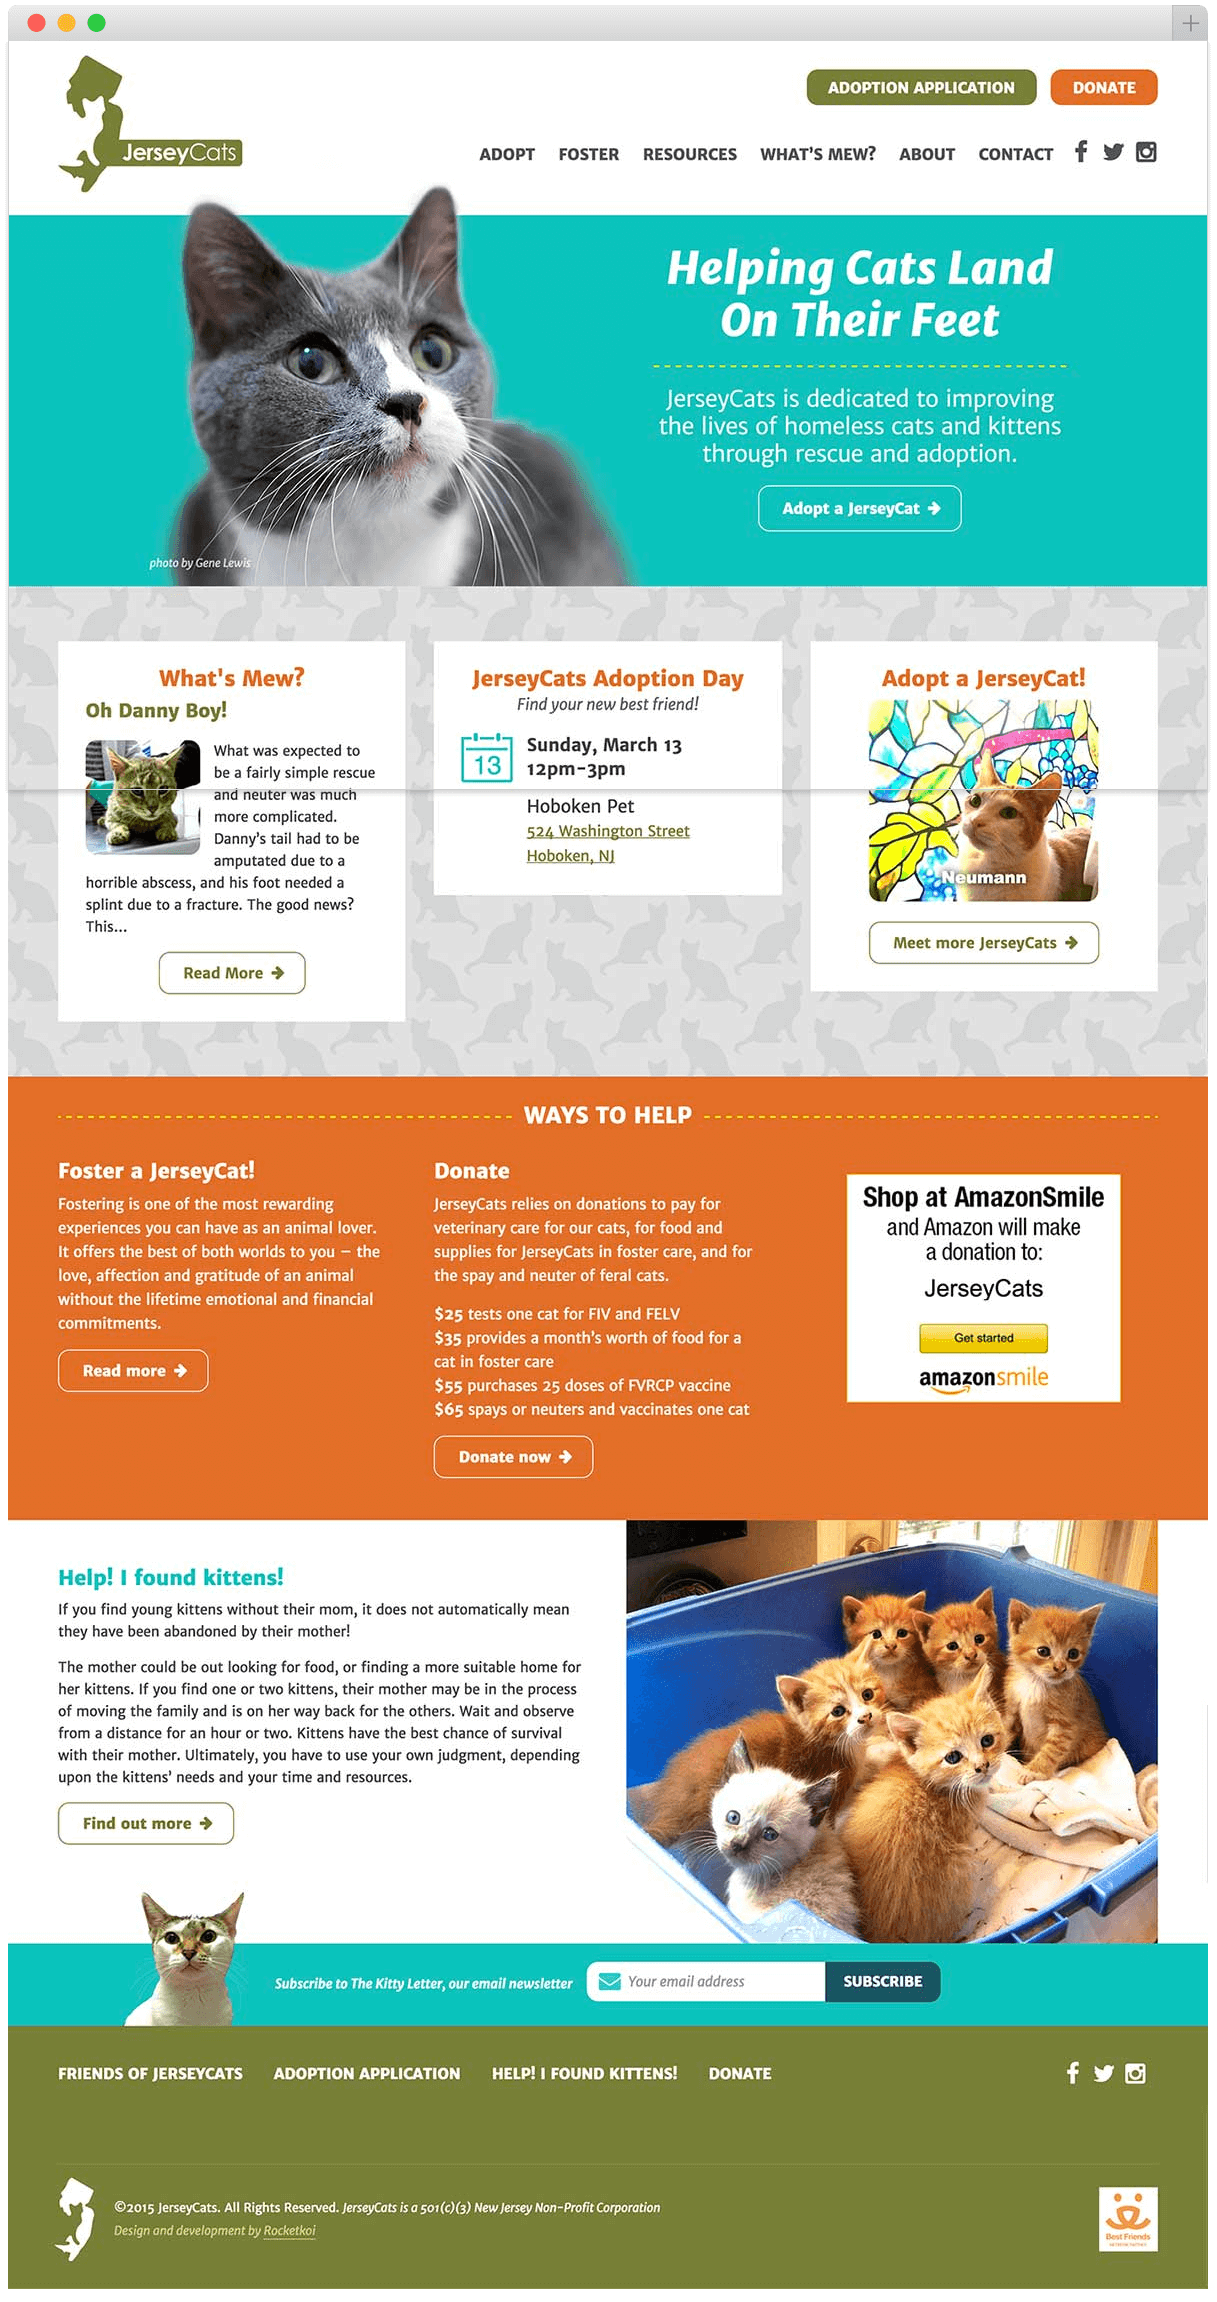 jerseycats.org homepage